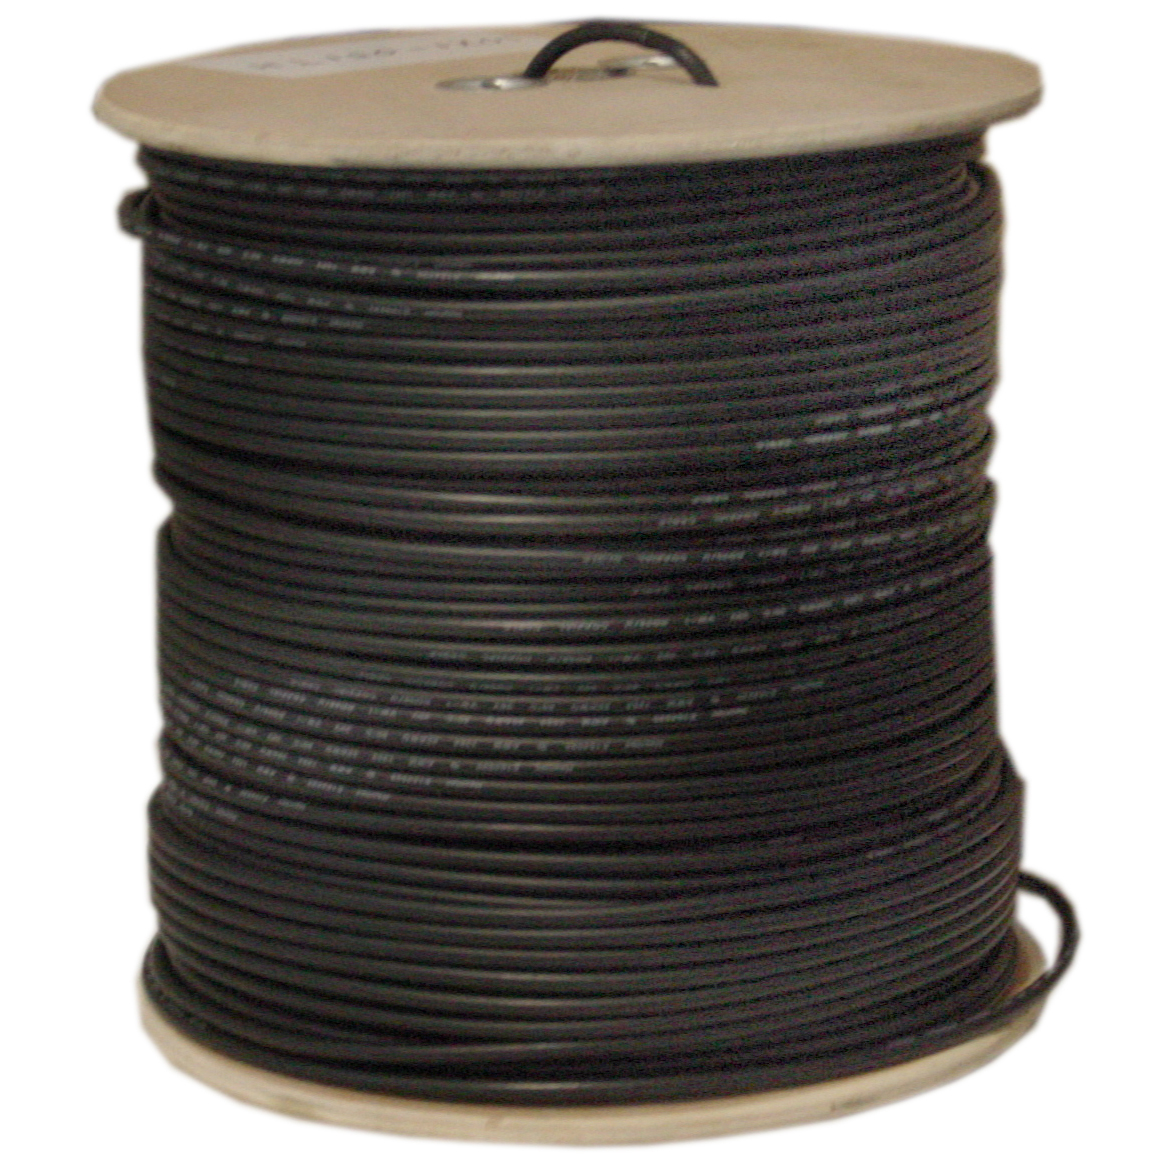 1000ft Black Bulk Rg58 Au Coaxial Cable 20 Awg Spool